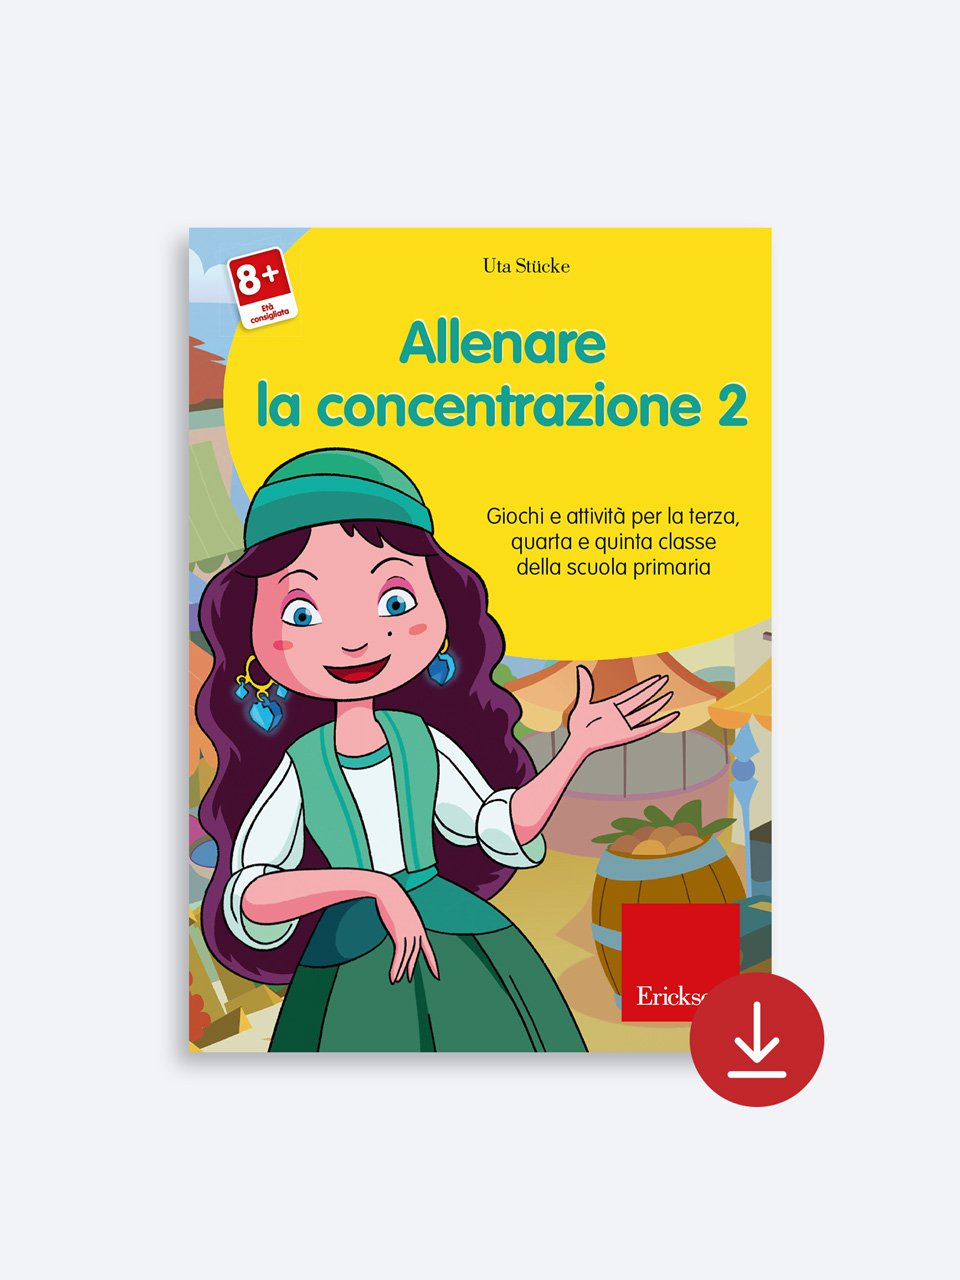 Allenare la concentrazione - Volume 2 Download - Erickson Eshop